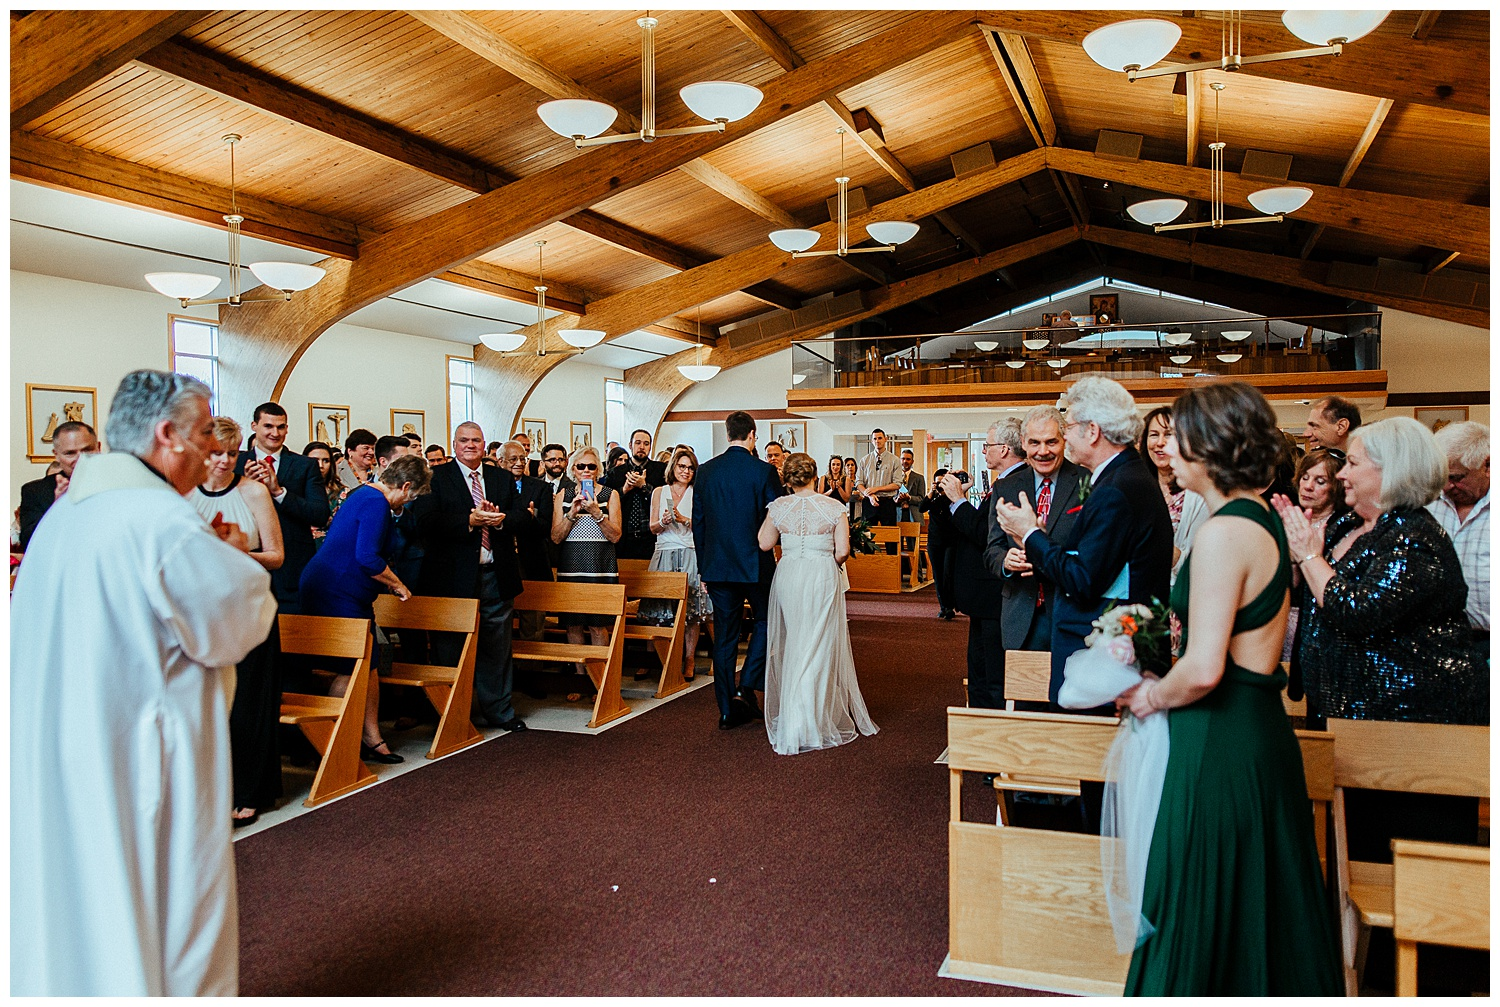 Beautiful spring wedding at St. Alphonsus Church and St. Cyril Jerusalem Social Hall in Jamison, Pennsylvania.